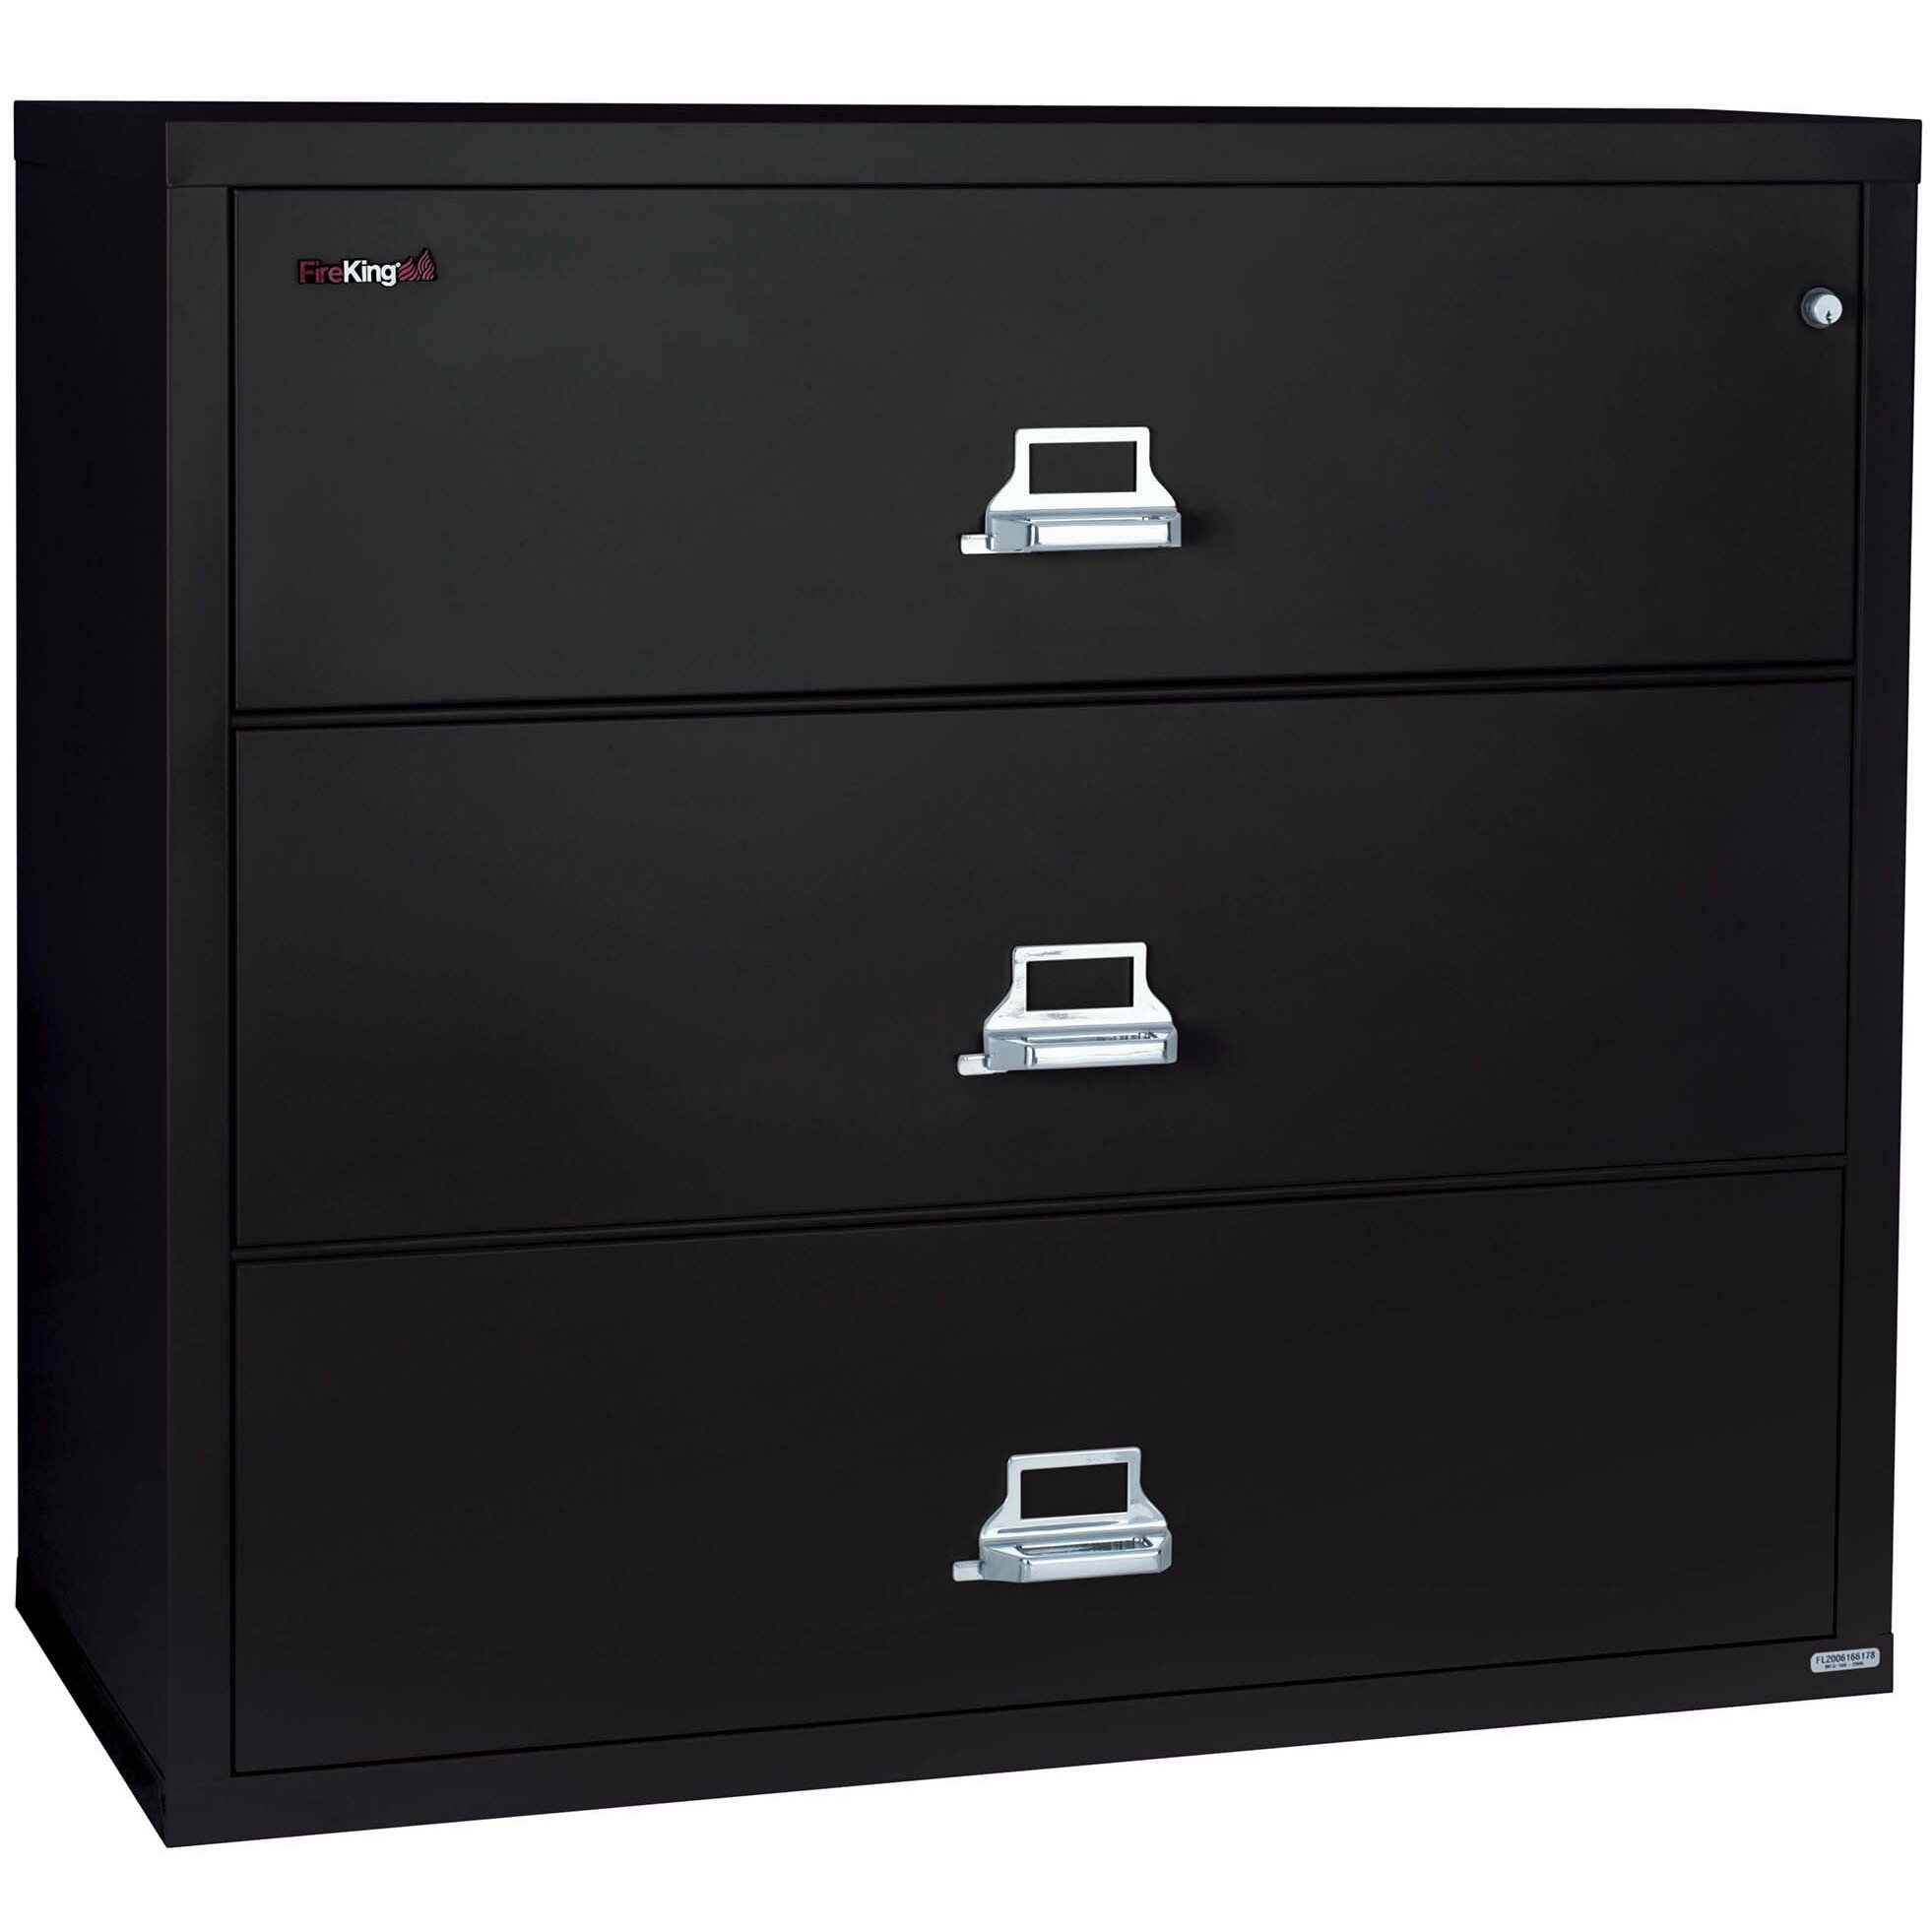 3 drawer lateral file cabinet fireking fireproof 3 drawer lateral file cabinet wayfair 10166